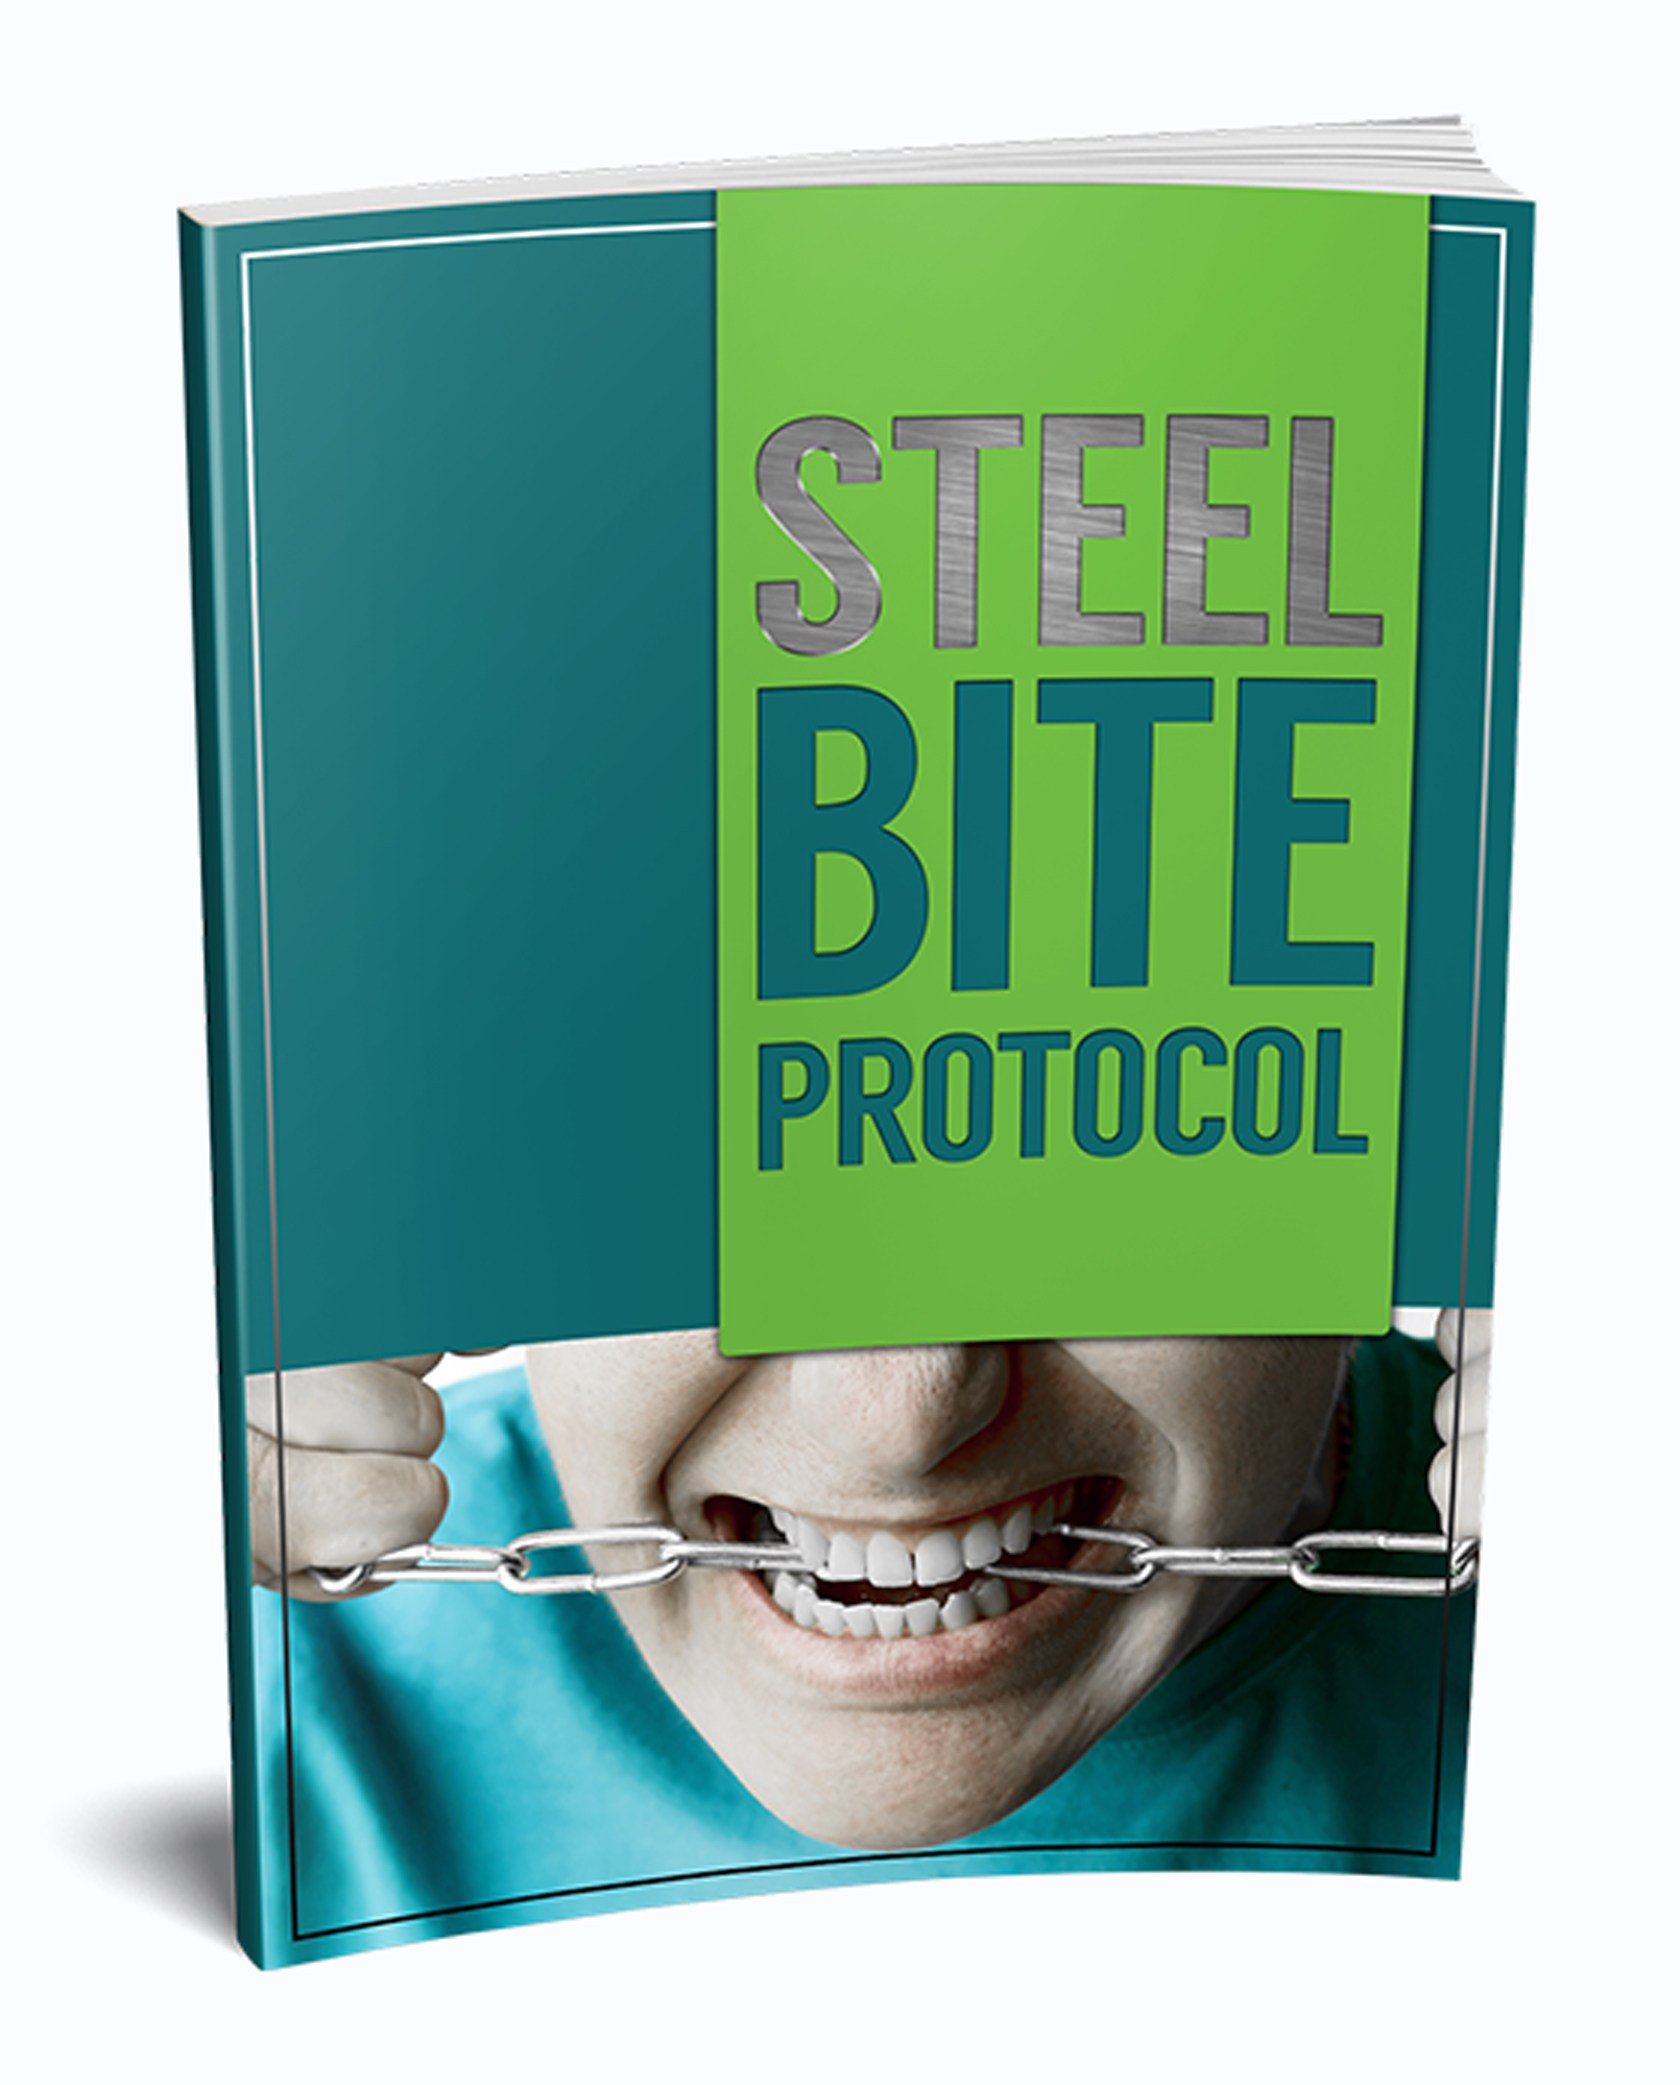 Steel-Bite-Protocol-review